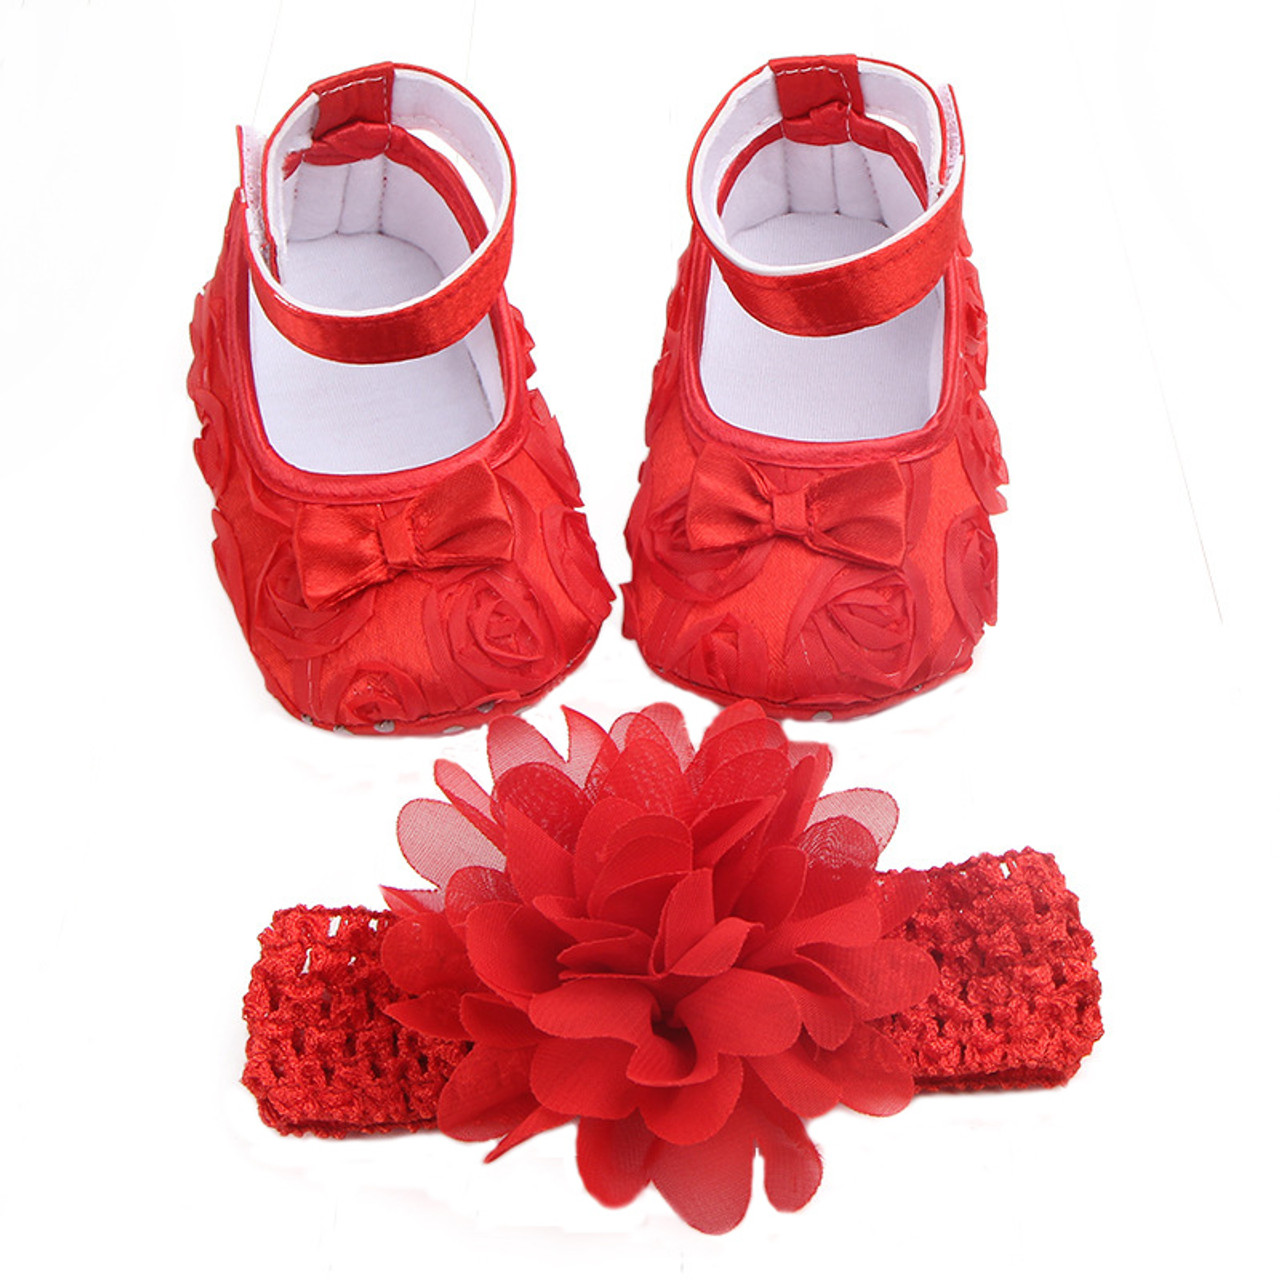 db5dfcc3d Baby Shoes Photo First Walkers Infant Footwear For Newborns Headdress Set  Head Flower Bows Toddler Soft ...